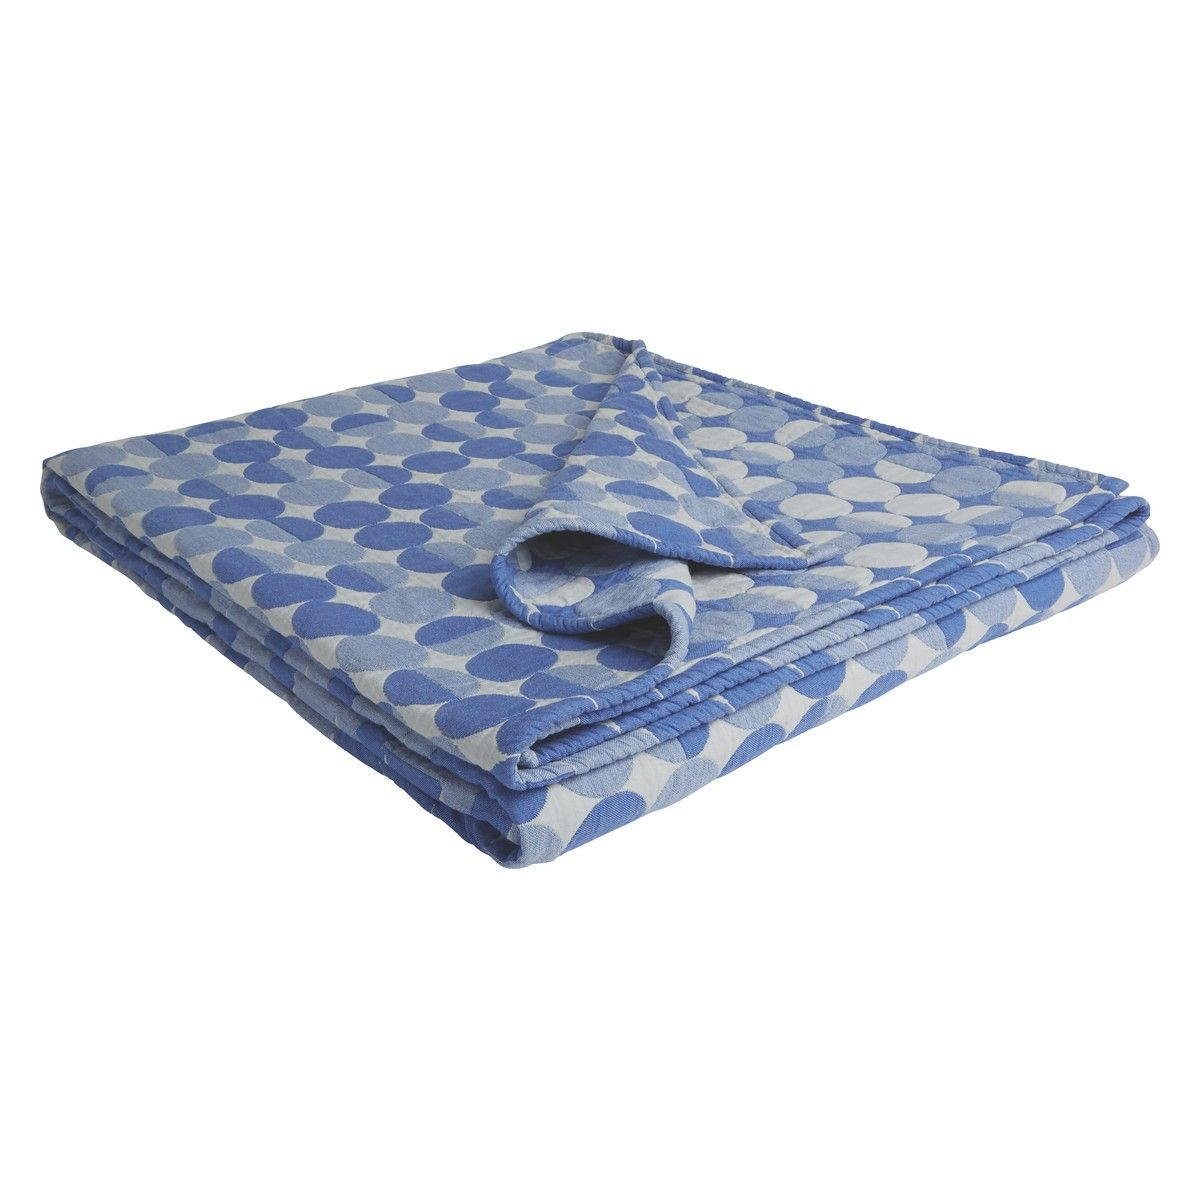 OCCHIO Blue and white quilted cotton throw 150x200cm   Buy now at Habitat UK